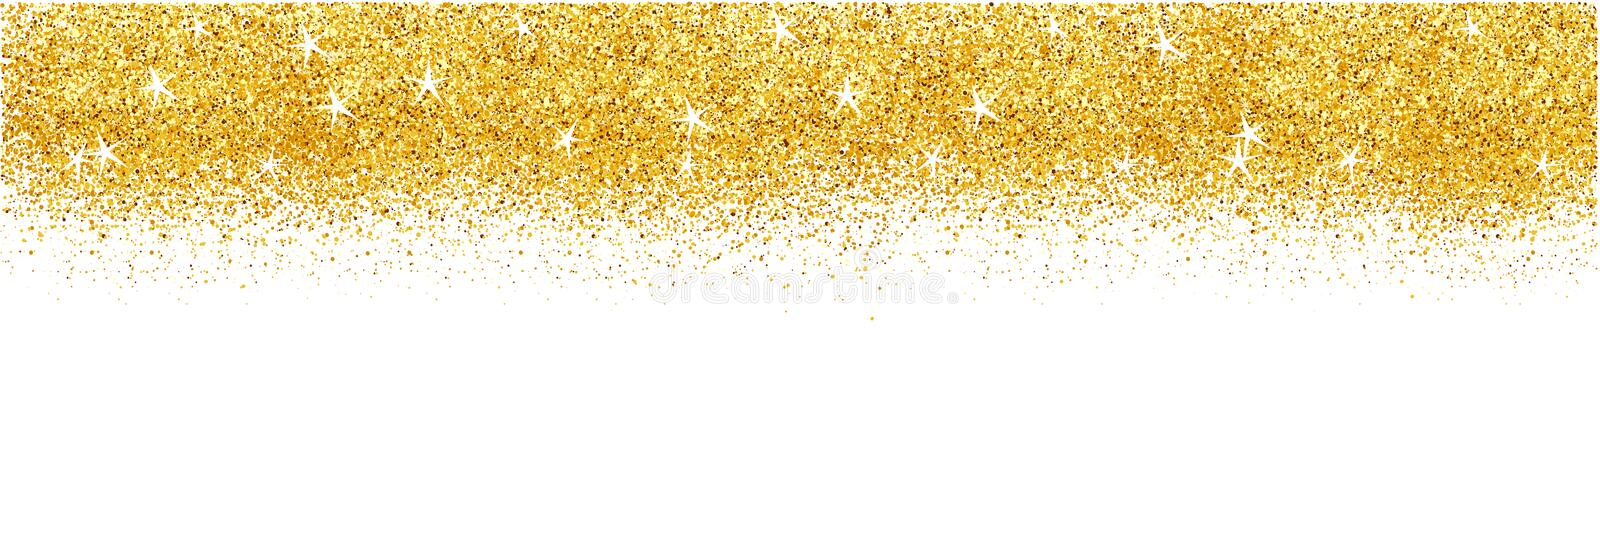 Card with gold glitter background. Shiny sparkles for advertising.  stock photo